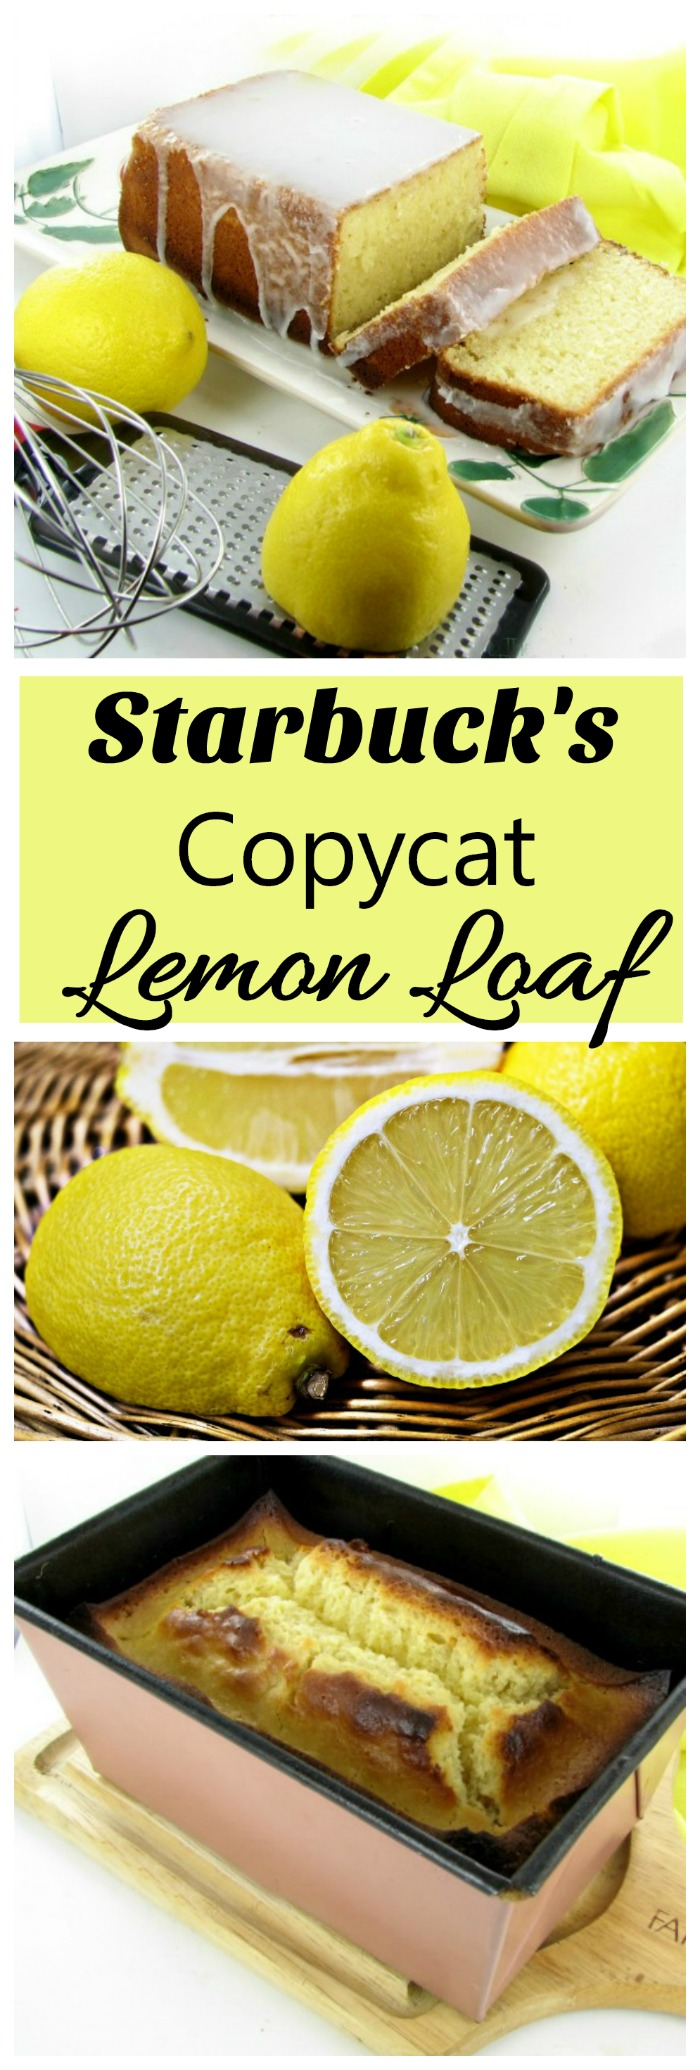 This Copycat Starbucks Lemon Loaf is tasty and easy to make. Have your favorite restaurant dessert at home.